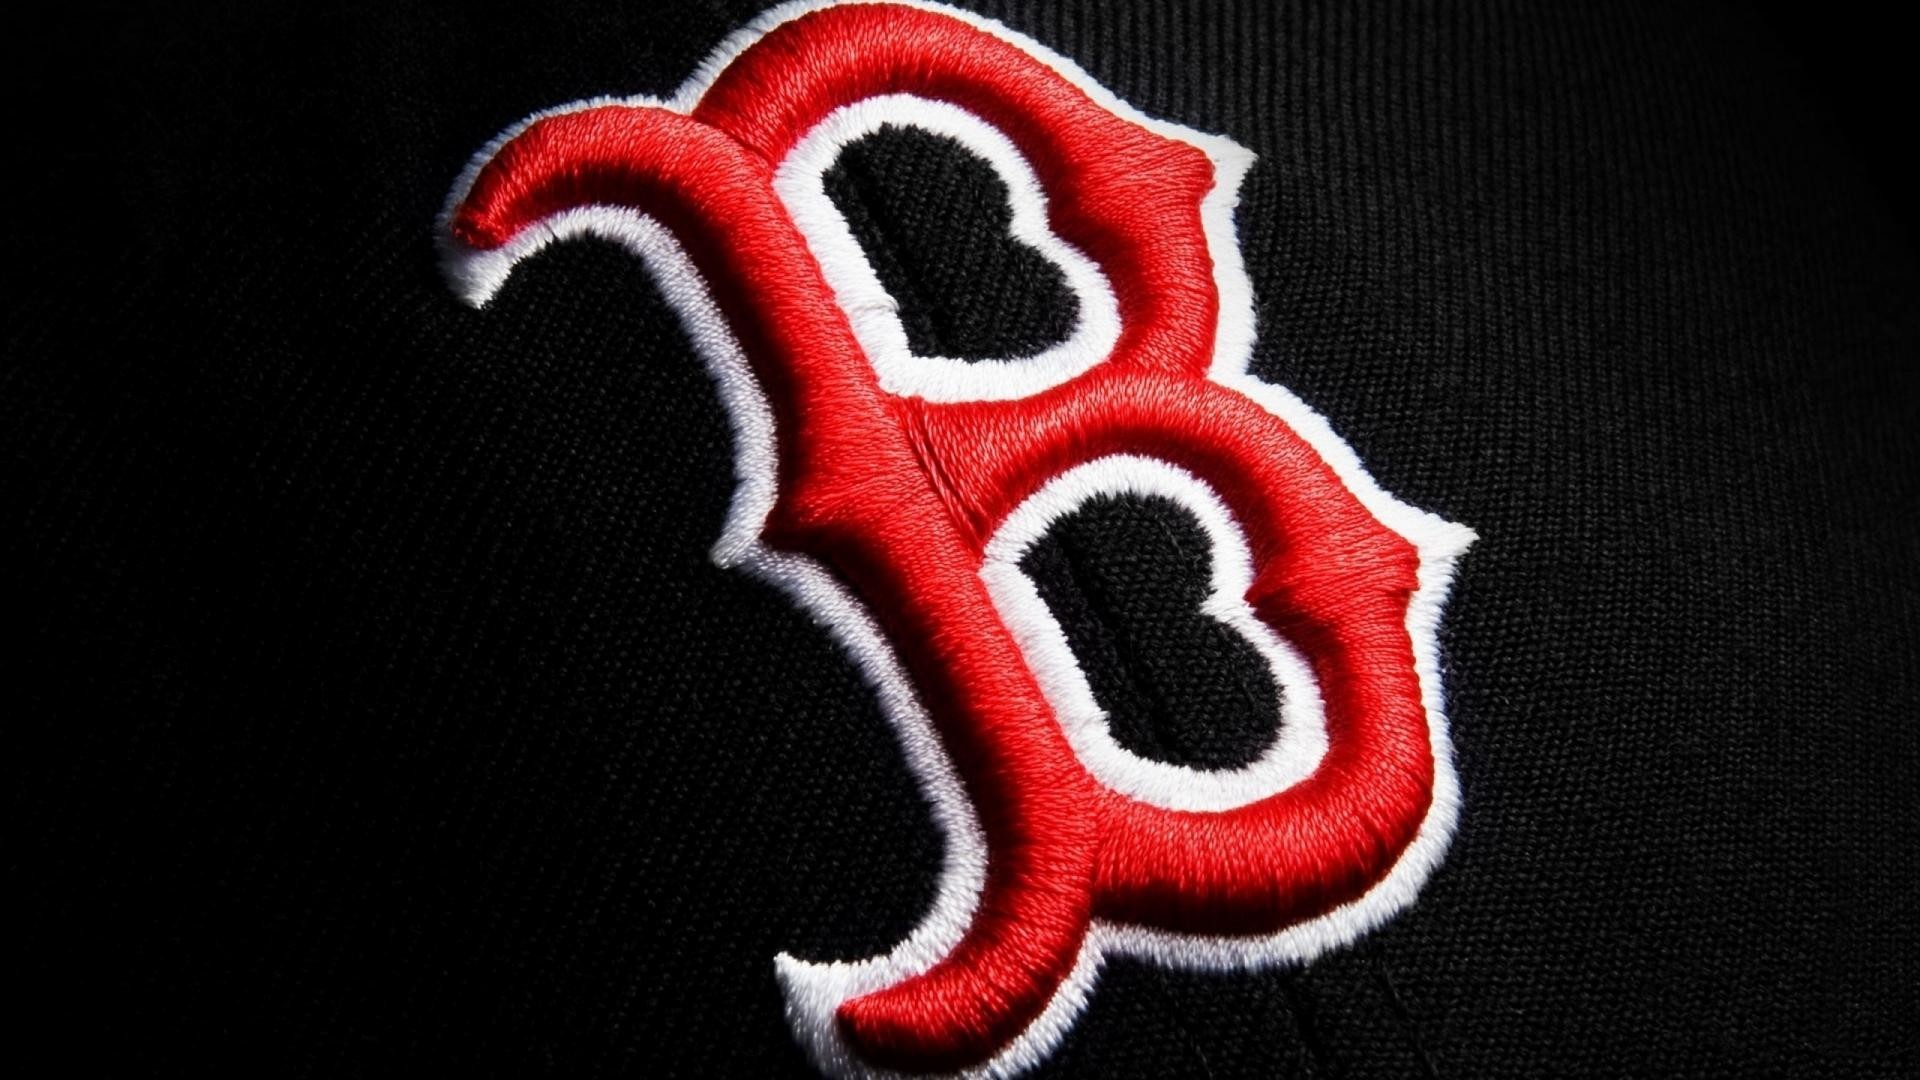 1080x1920 Baseball Boston Red Sox IPhone Wallpaper